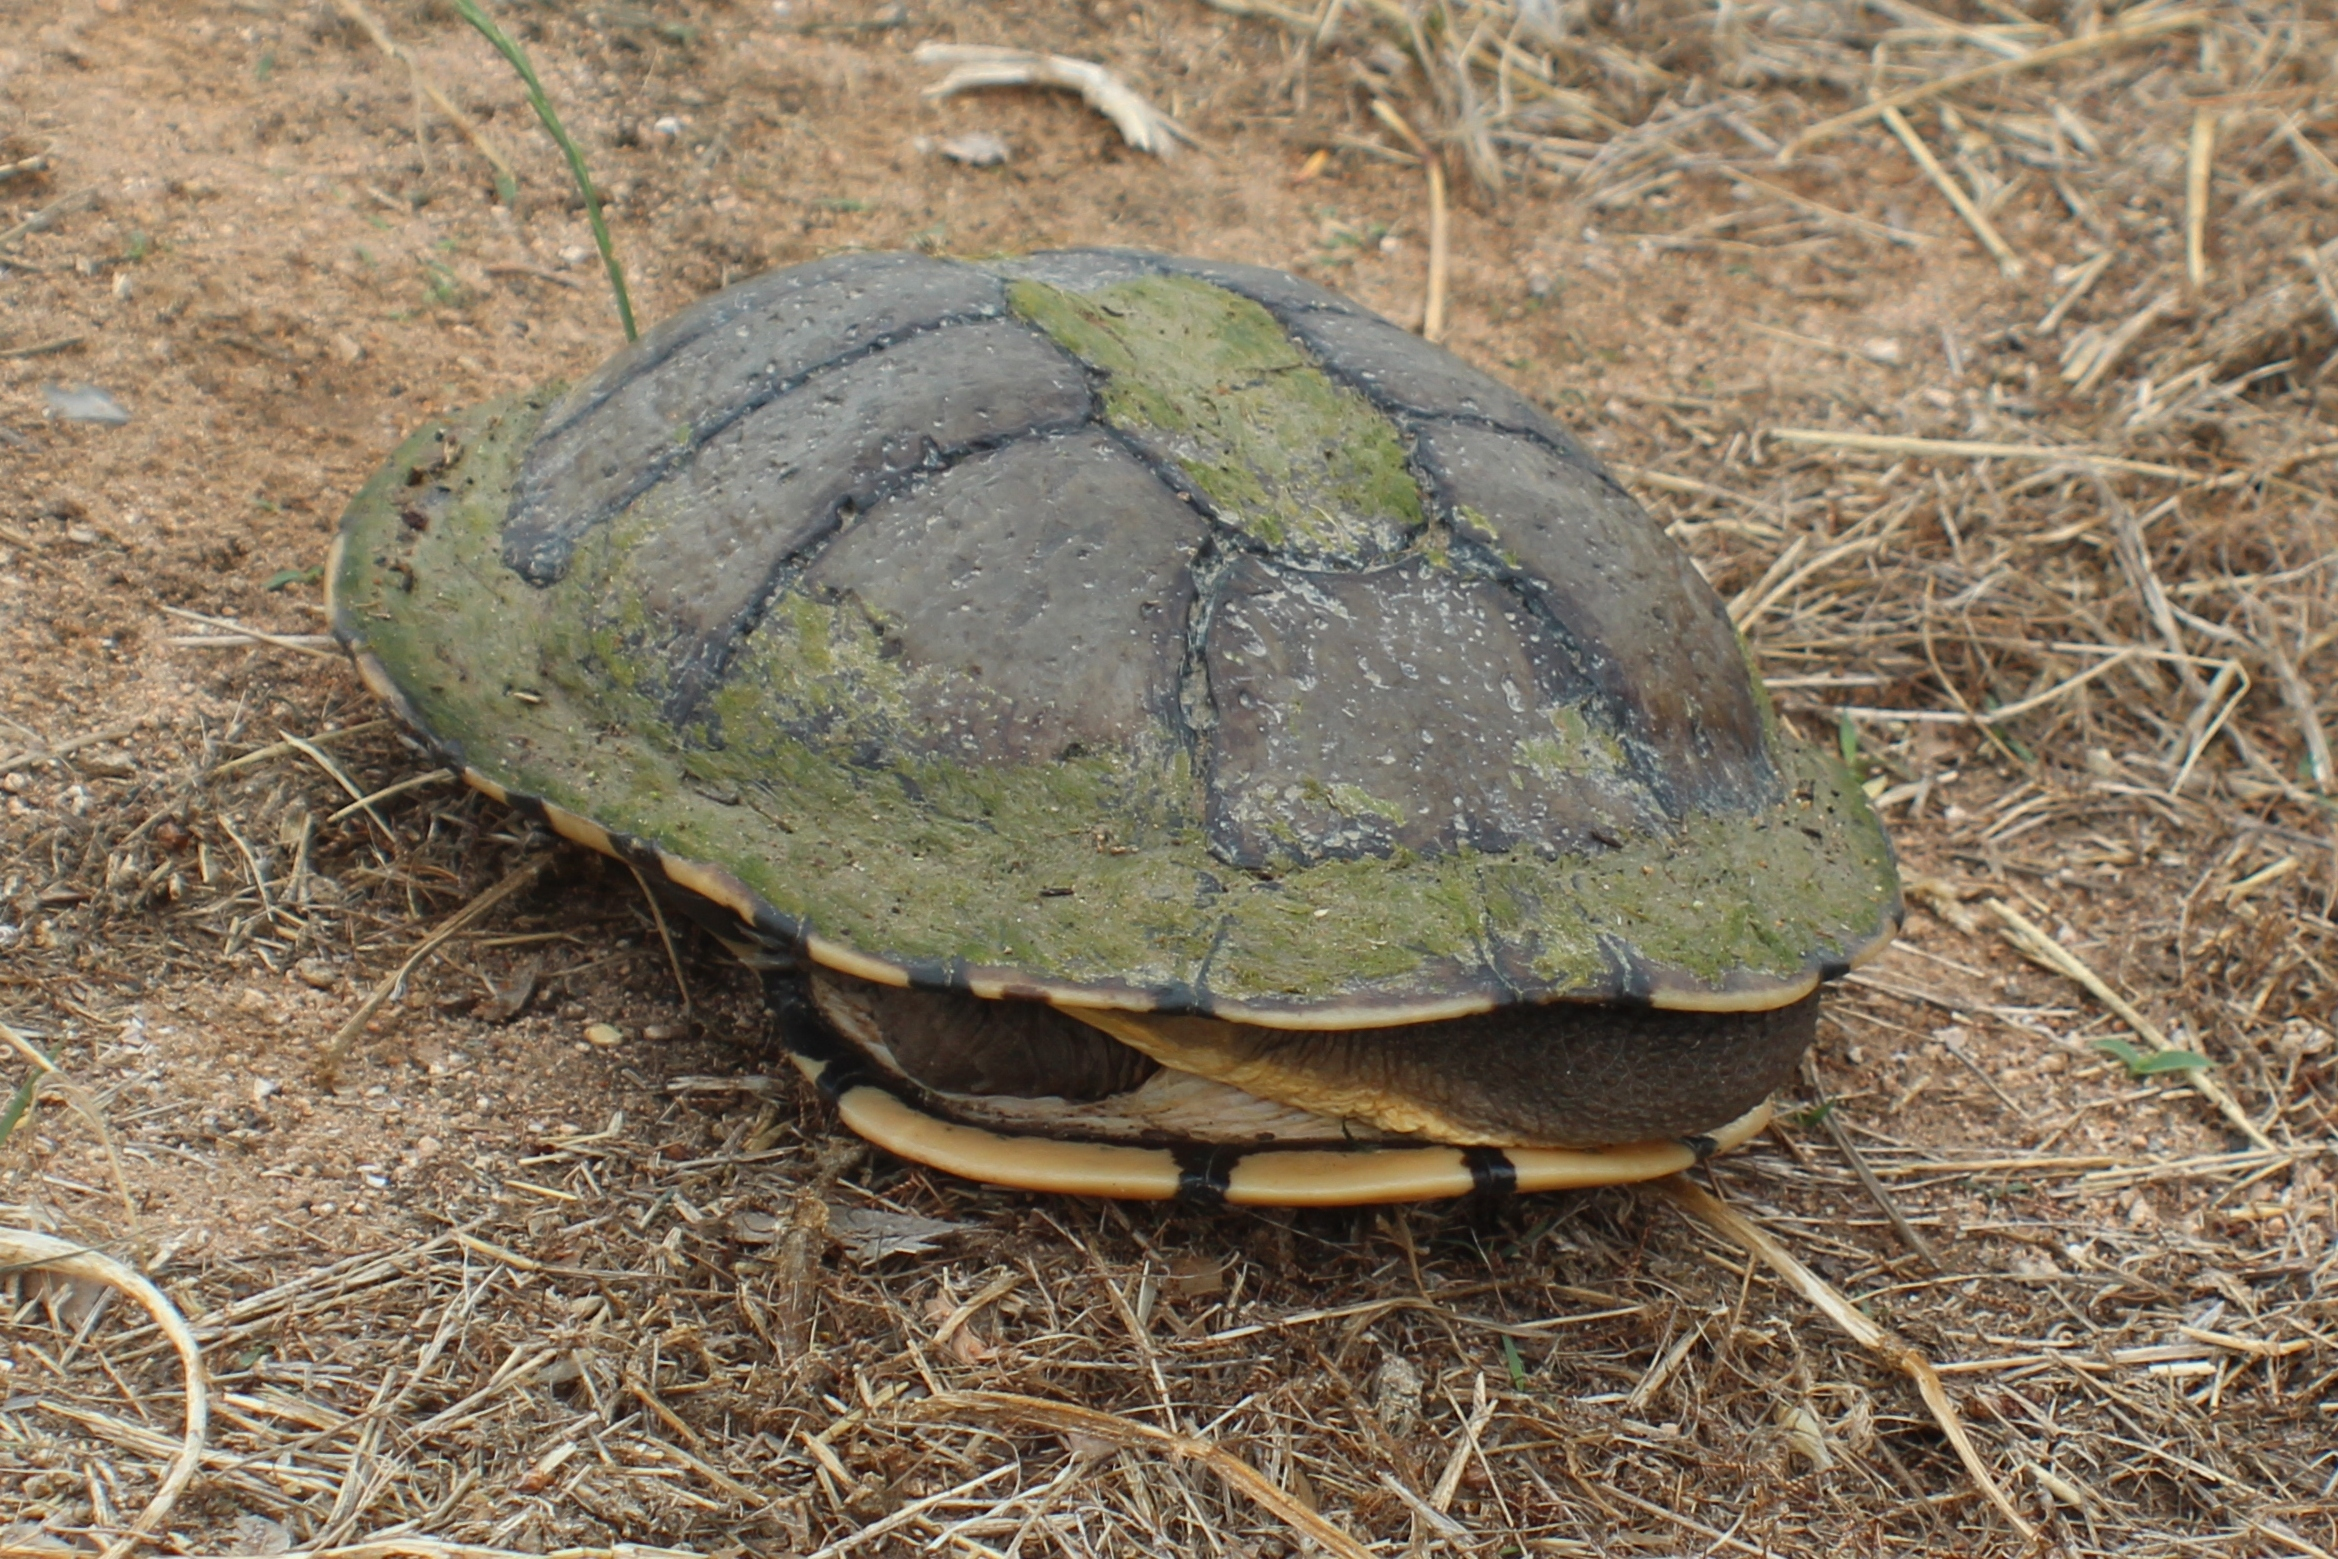 Image of Common snakeneck turtle